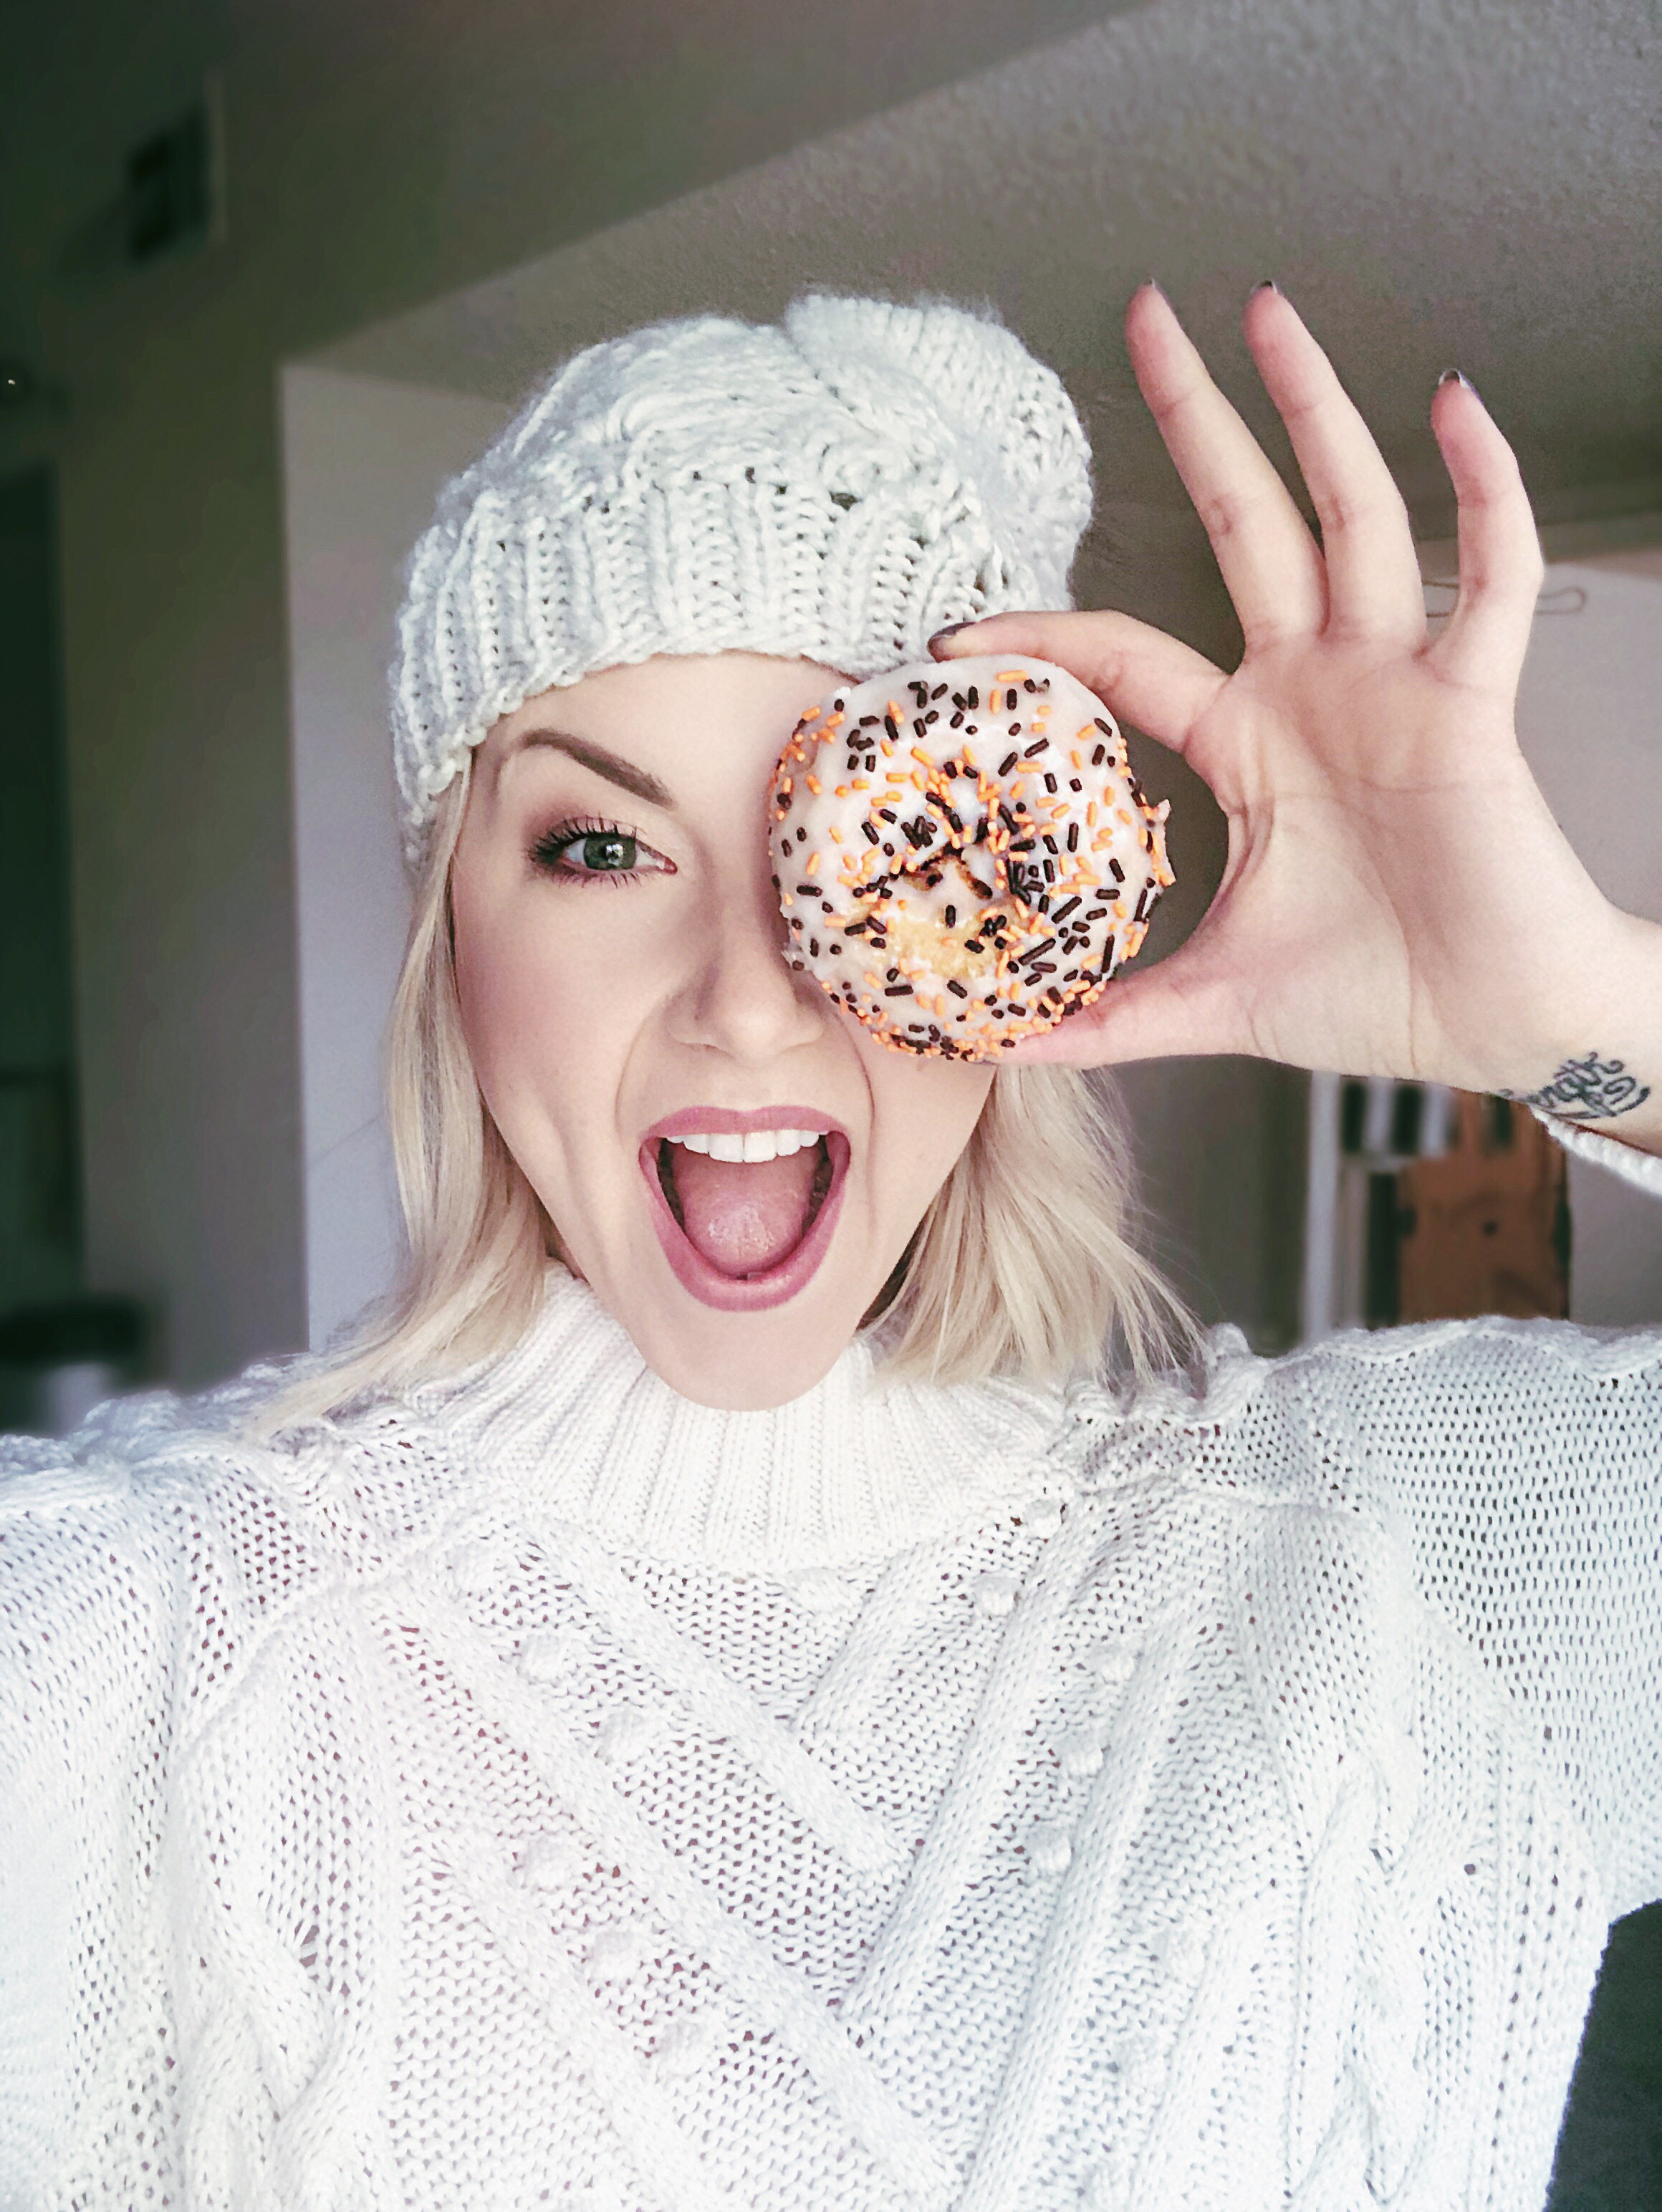 Be A Sprinkled Donut In A World Full Of Bagels - Mental Health >>